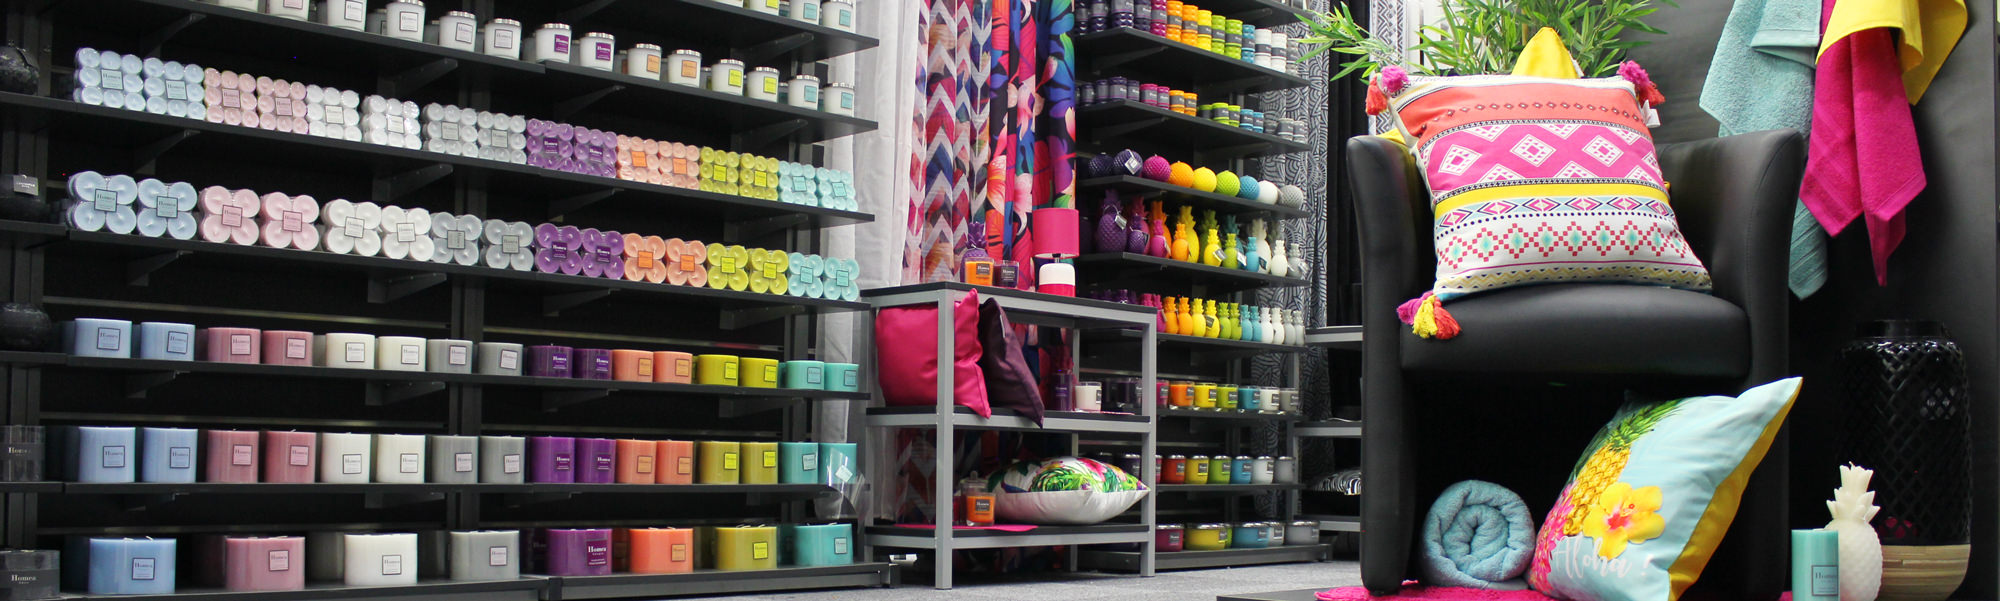 U10 – Scent Showroom – Homea brand – Our expertise